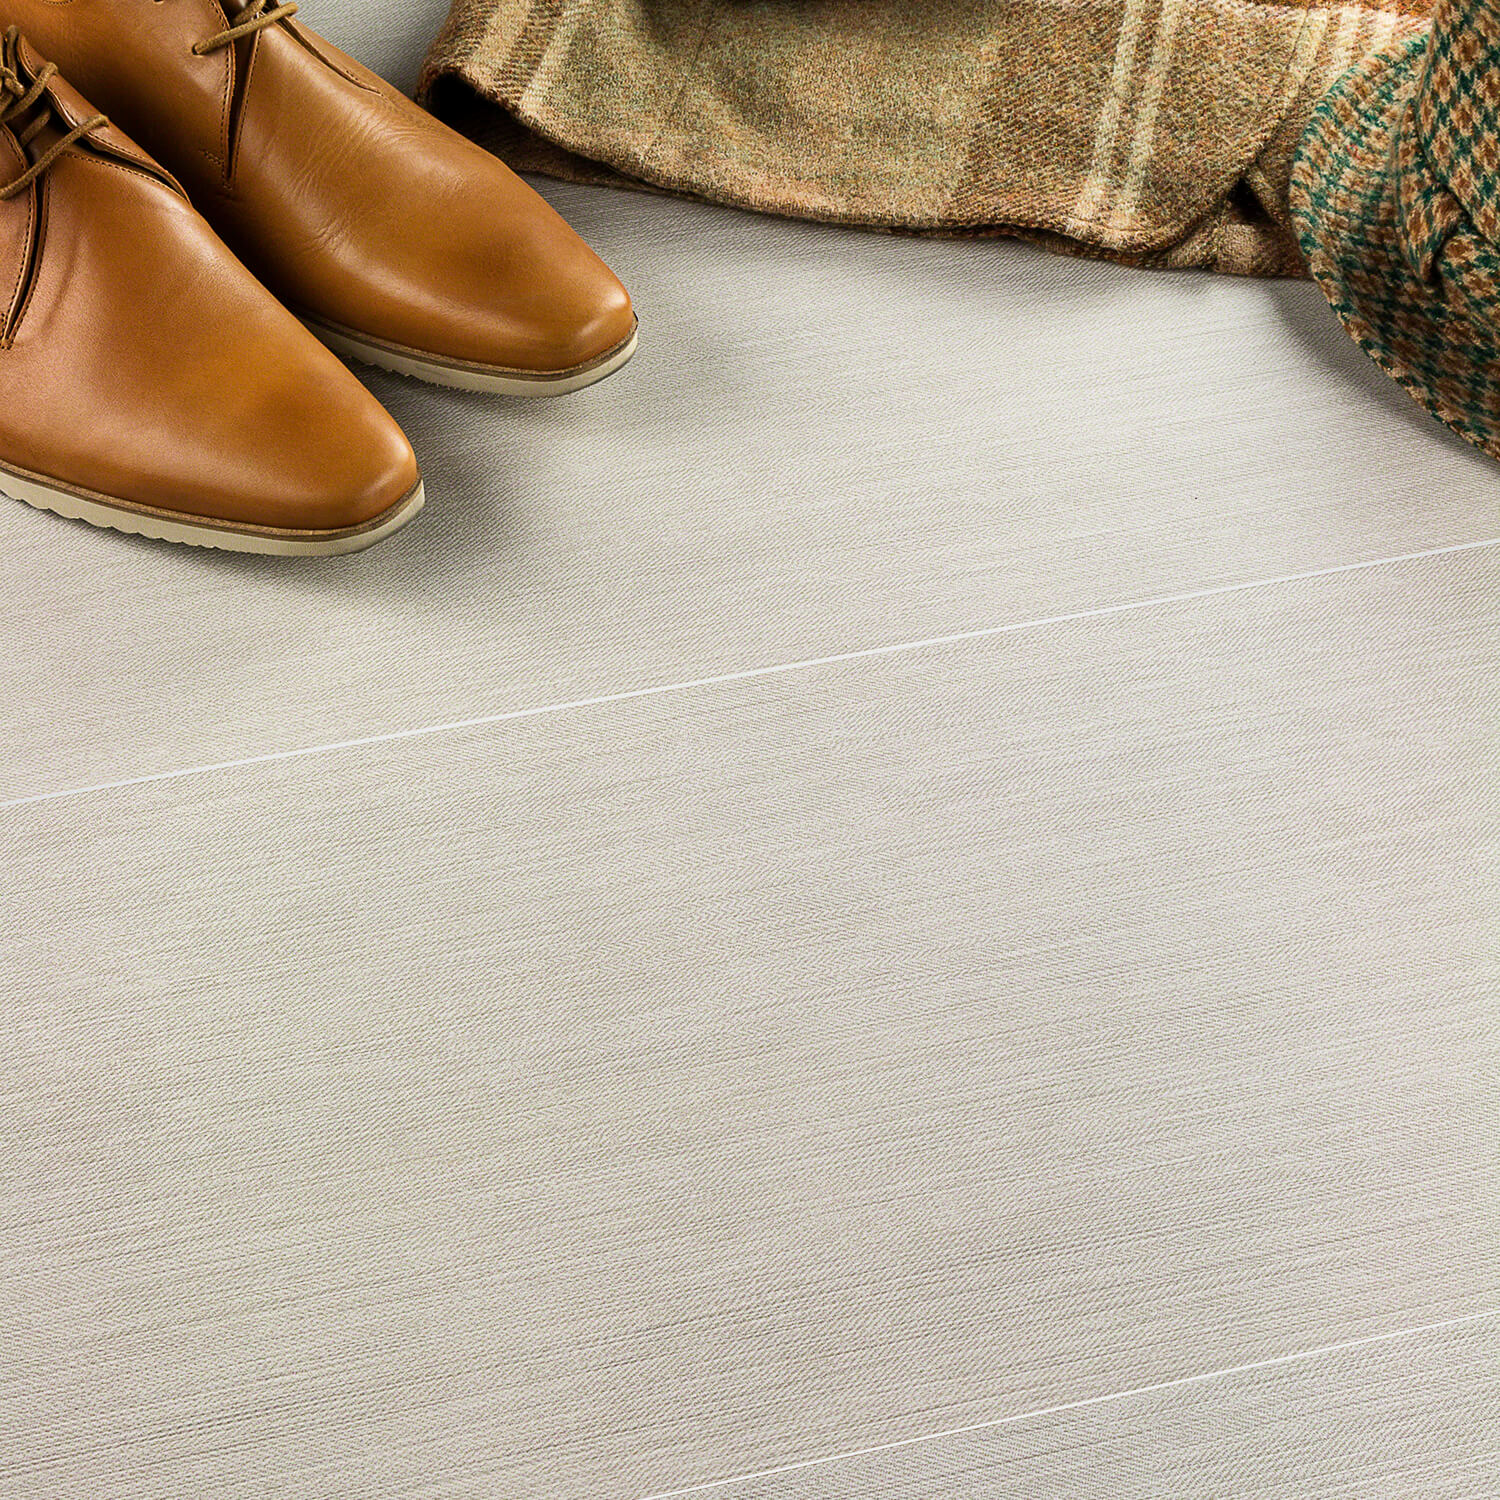 Best Ways to Use Tile - Gabardine from the Gabardine Collection by Stacy Garcia │New York for TileBar - Life-Styled.net